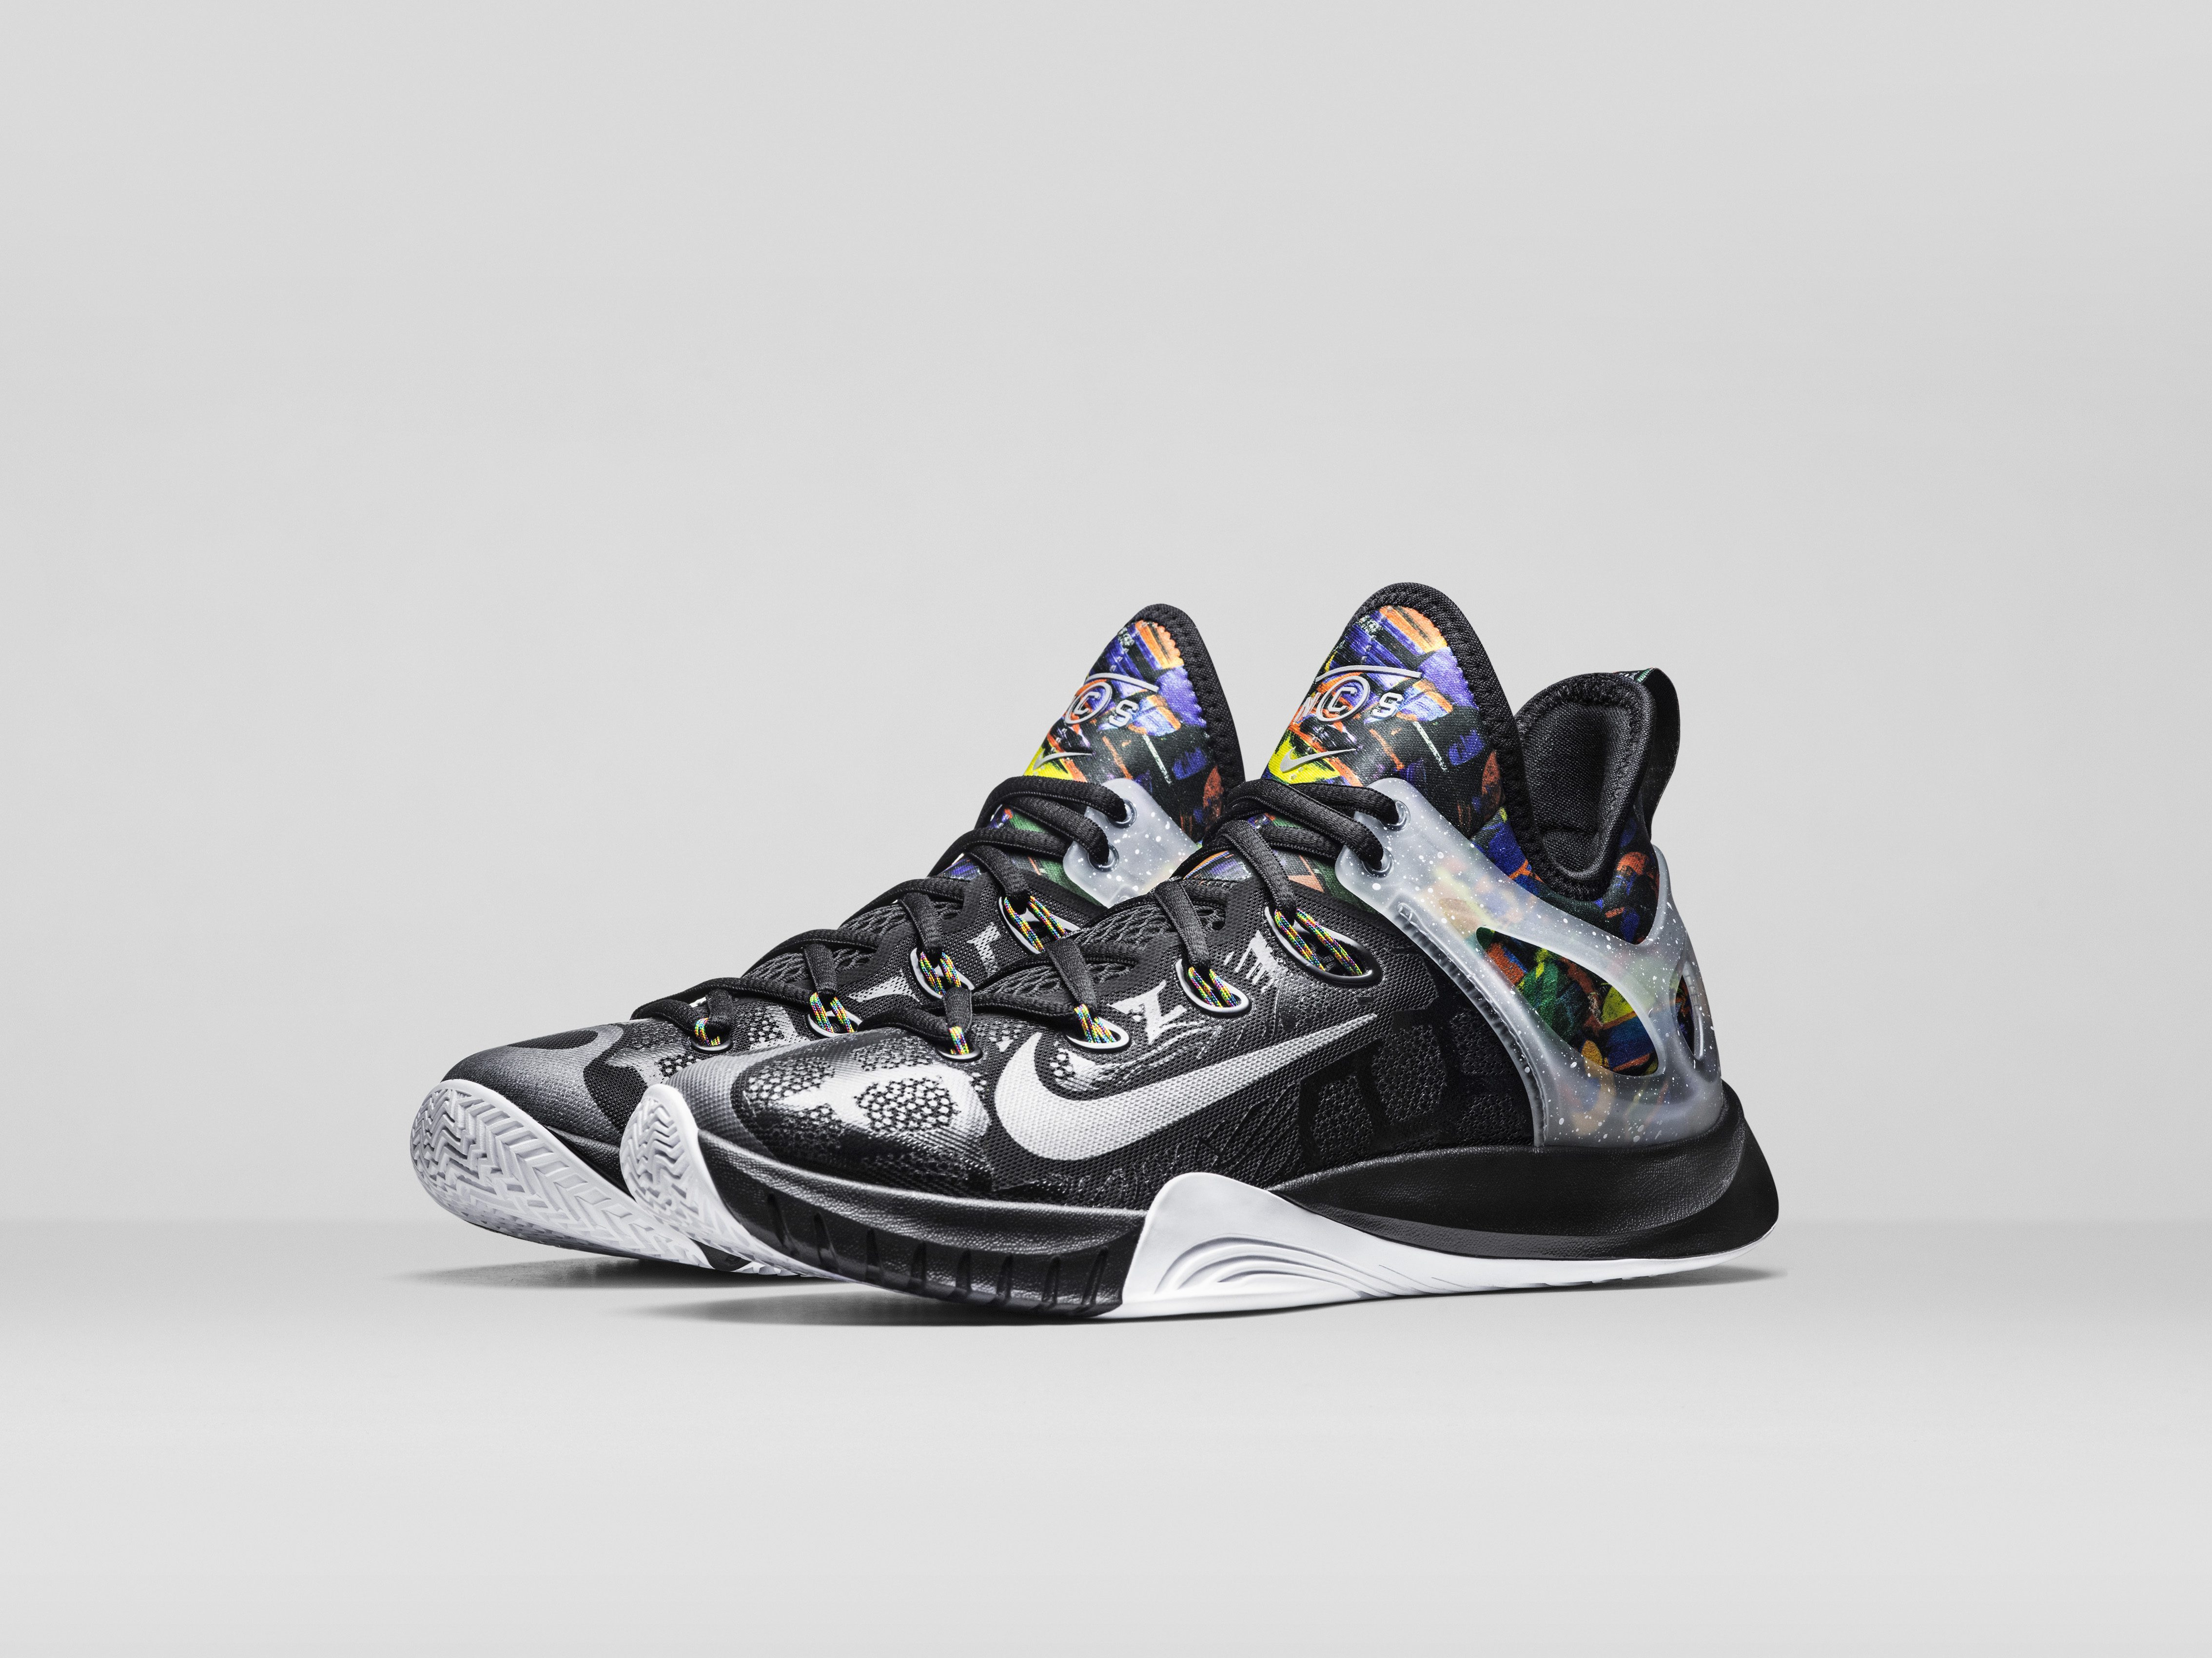 c64ed78092c8 ... The Nike Basketball Net Collectors Society Collection consists of two  basketball performance shoes — the Nike  Nike Zoom Hyperrev 2015 ...